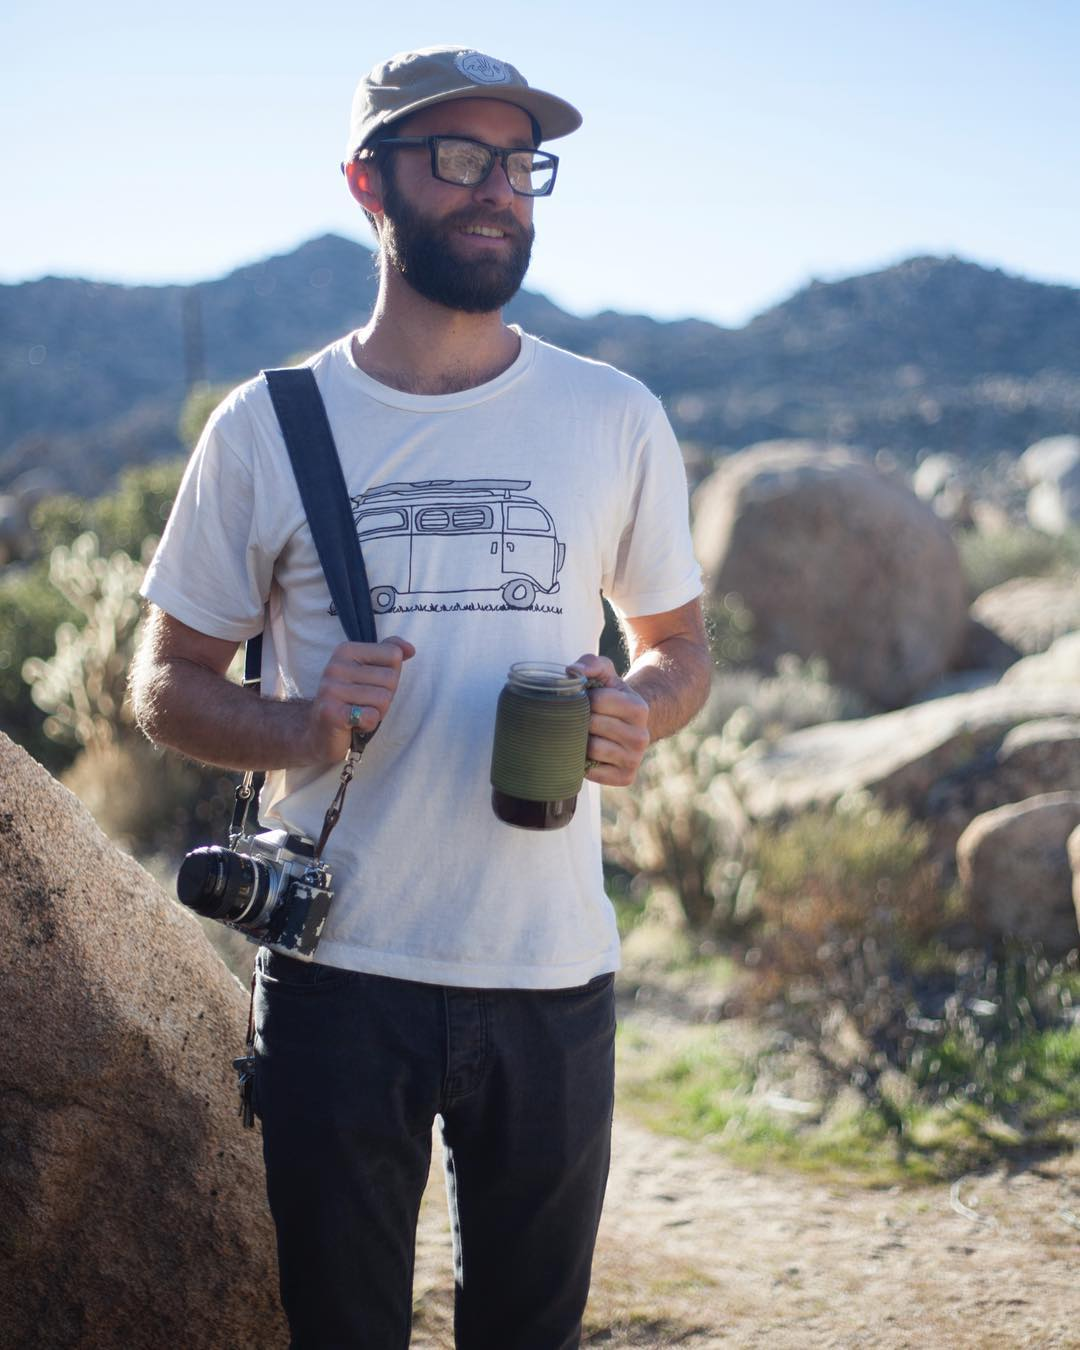 ~ Adventure Pack ~  Two things we bring on every journey.  1) The Adventure tee, and  2) The Adventure Mug.  Both made right here in the USA, both ready and willing to go anywhere your heart desires. Both available in our online shop, link is in da...